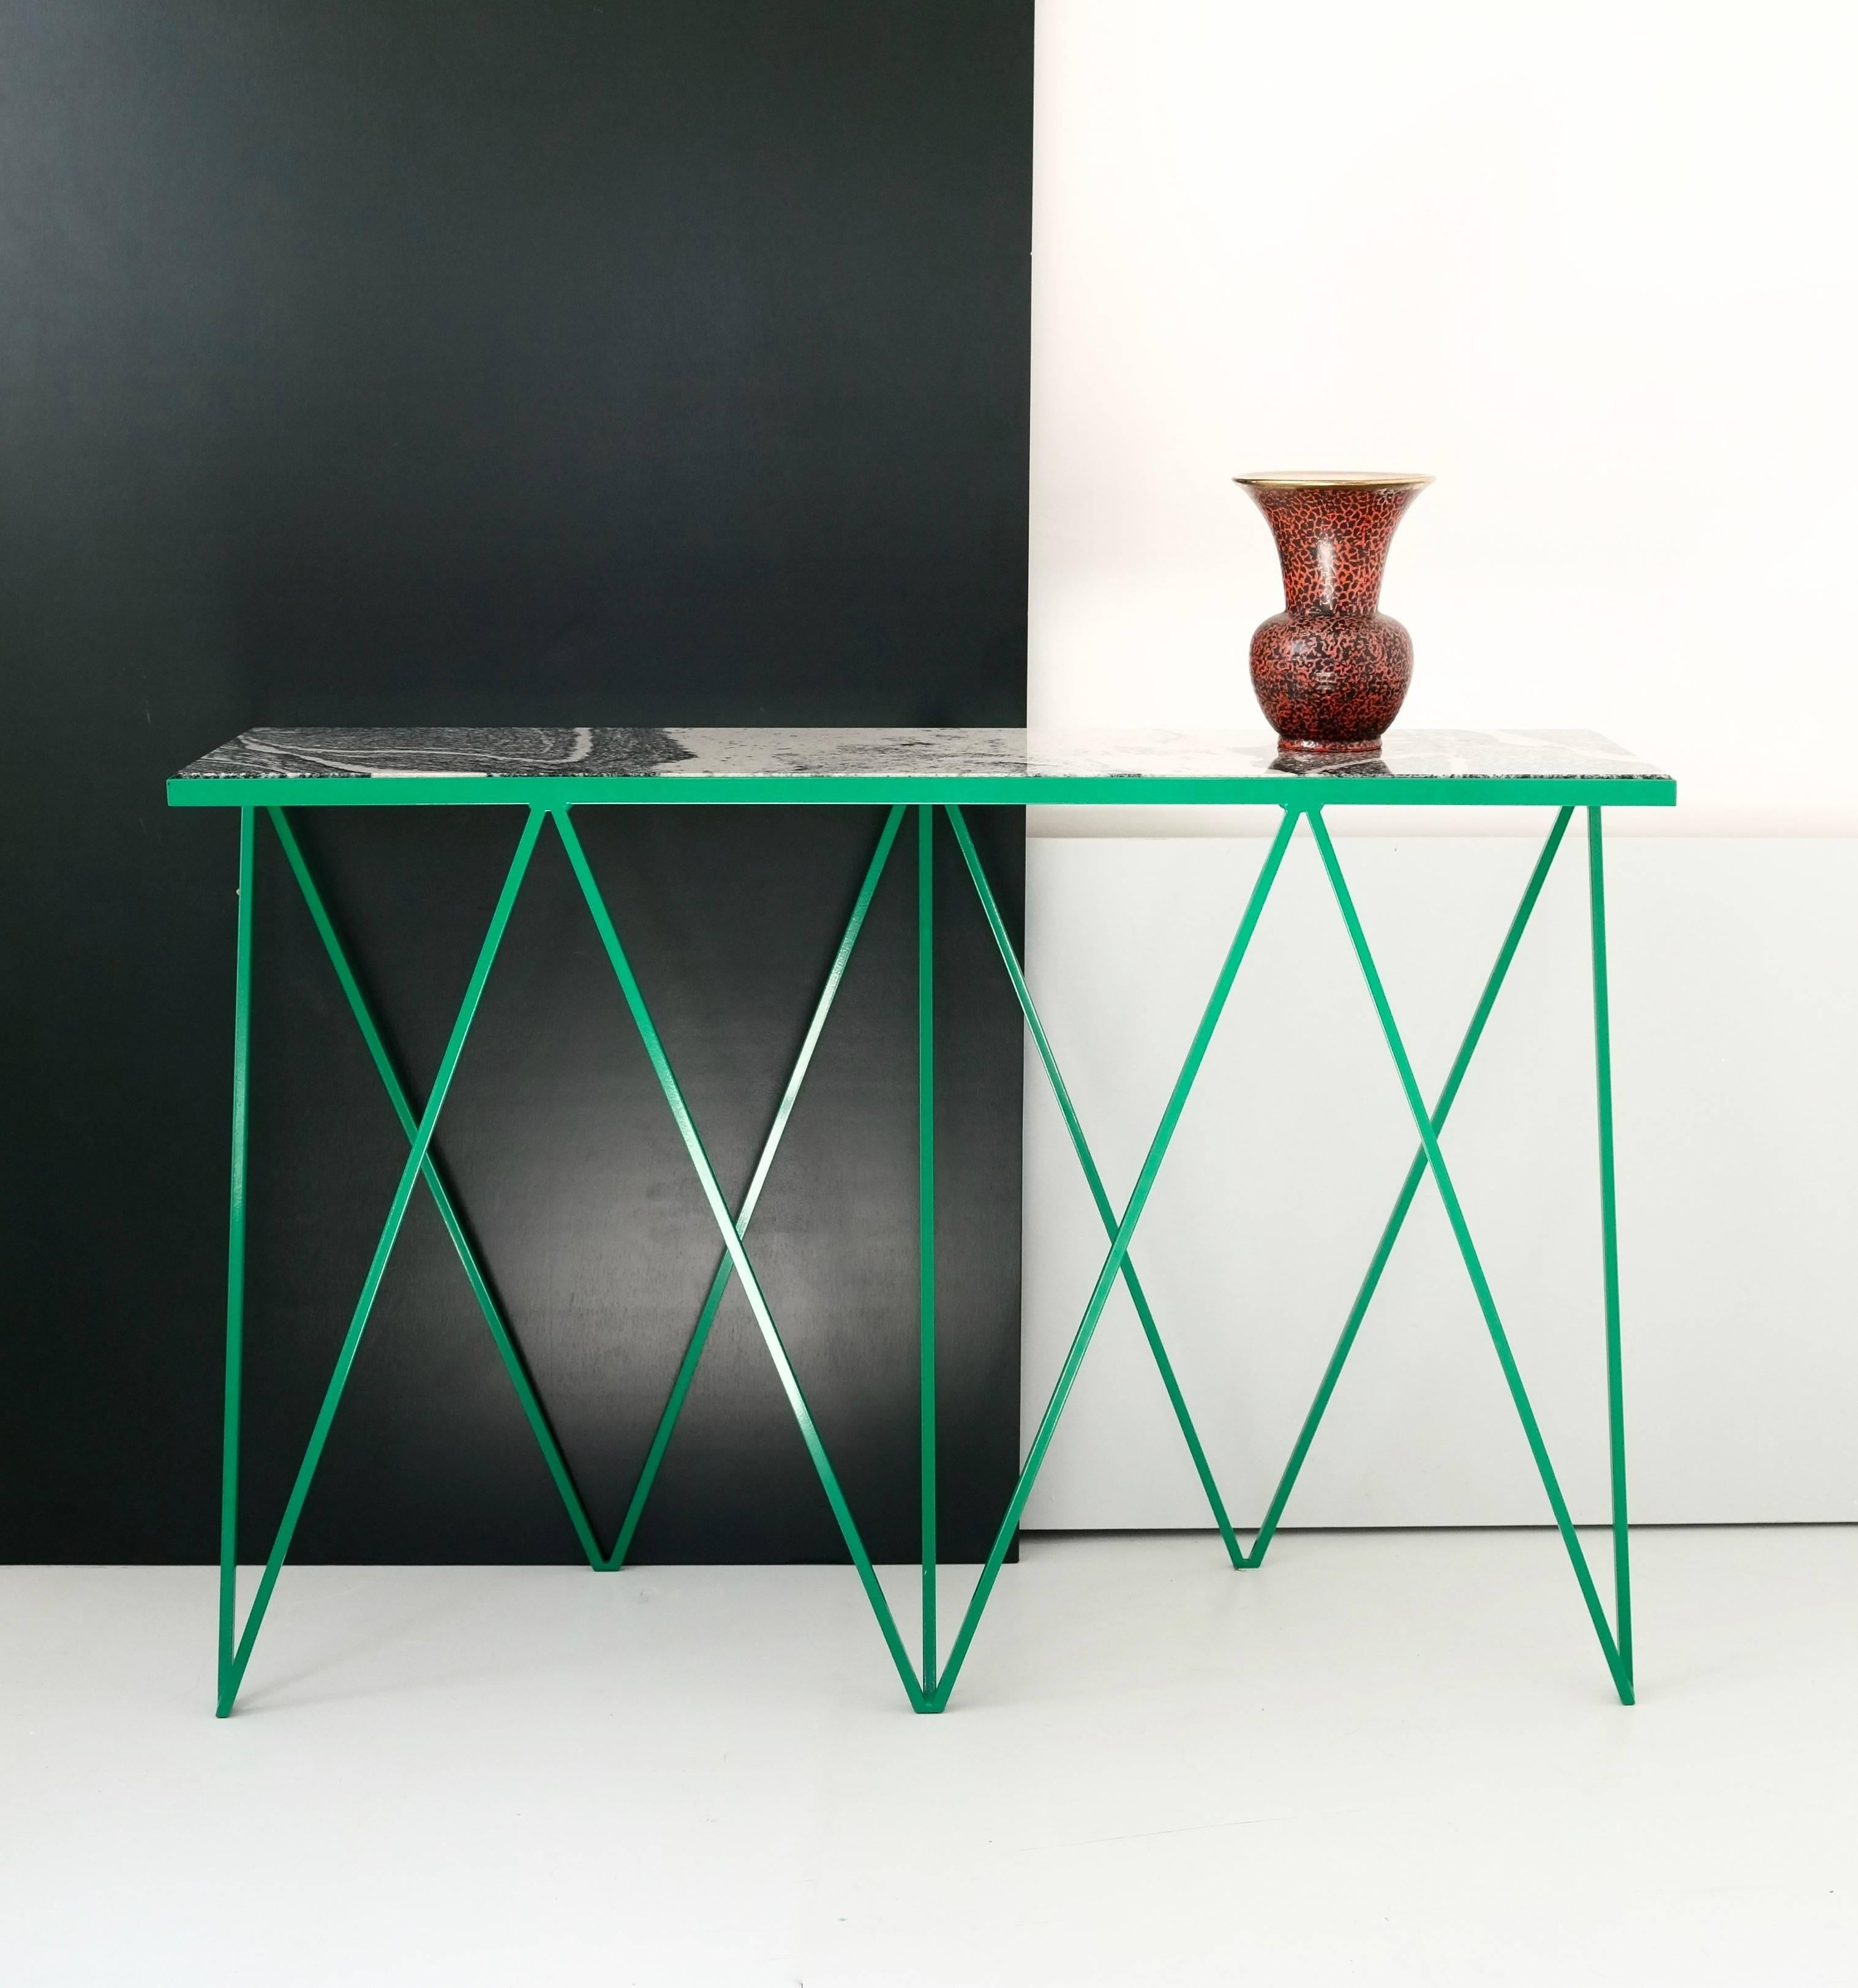 The Limited Edition Giraffe Console Table Is Made With A Bright Green  Powder Coated Steel Frame